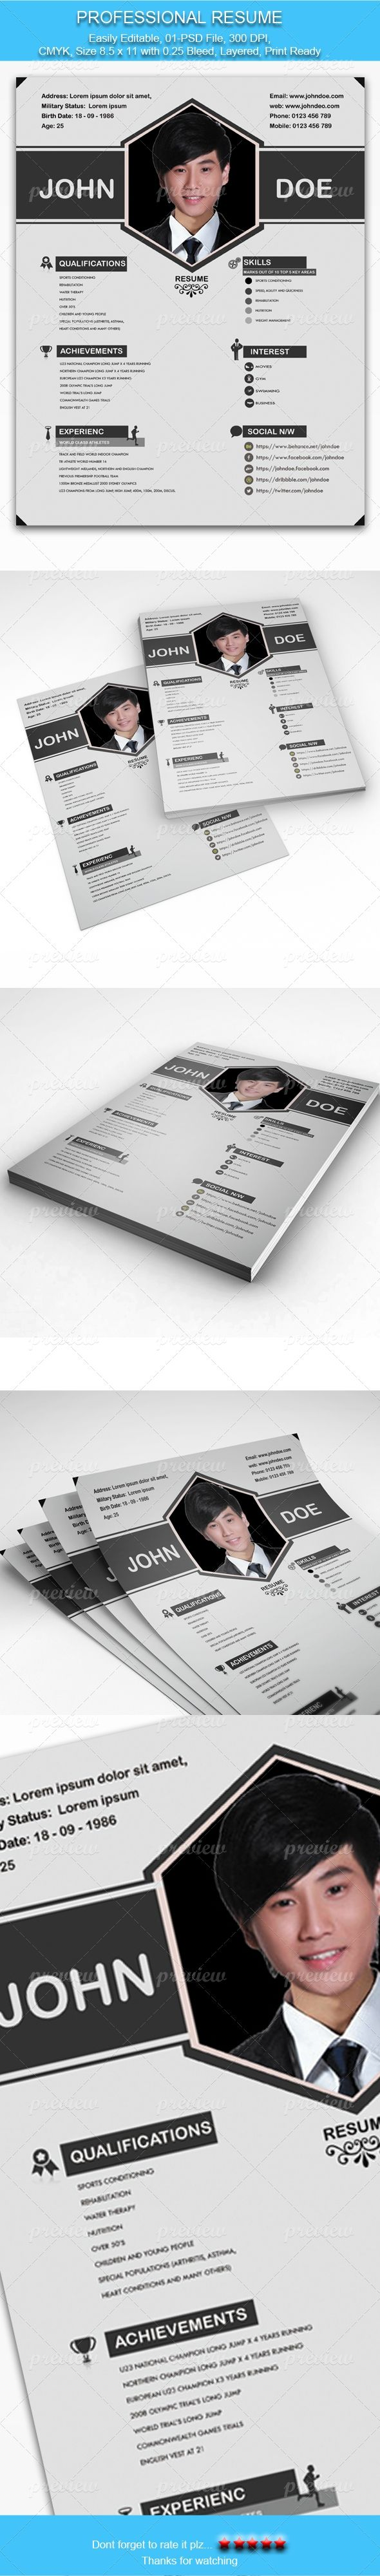 56 best CV images on Pinterest | Resume, Creative resume and Curriculum